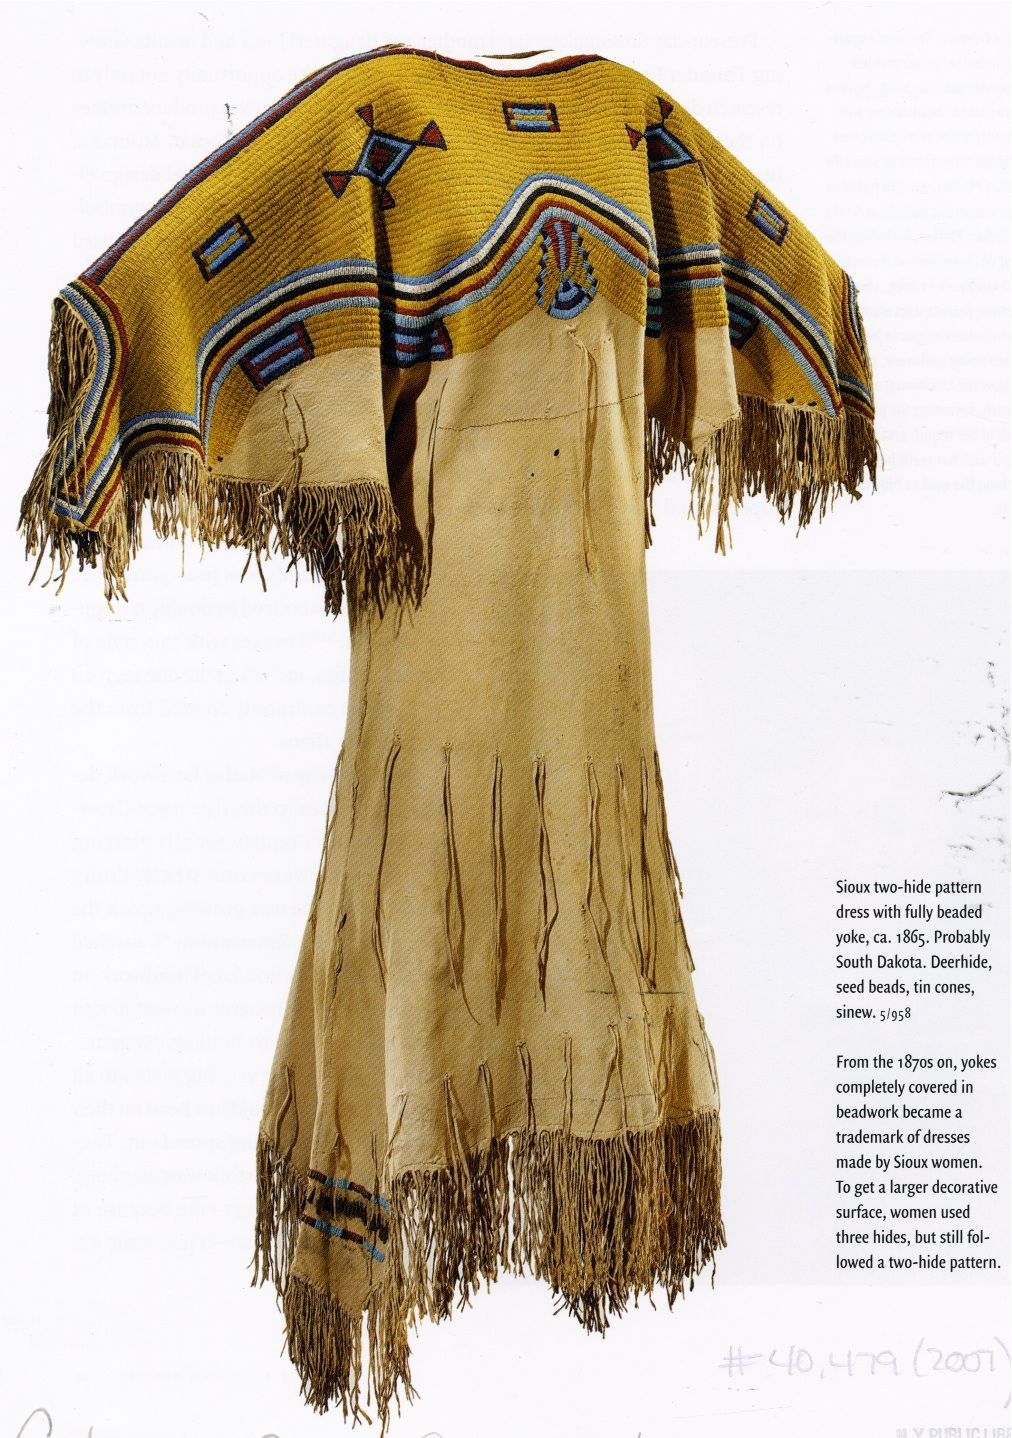 Pictures of sioux clothing